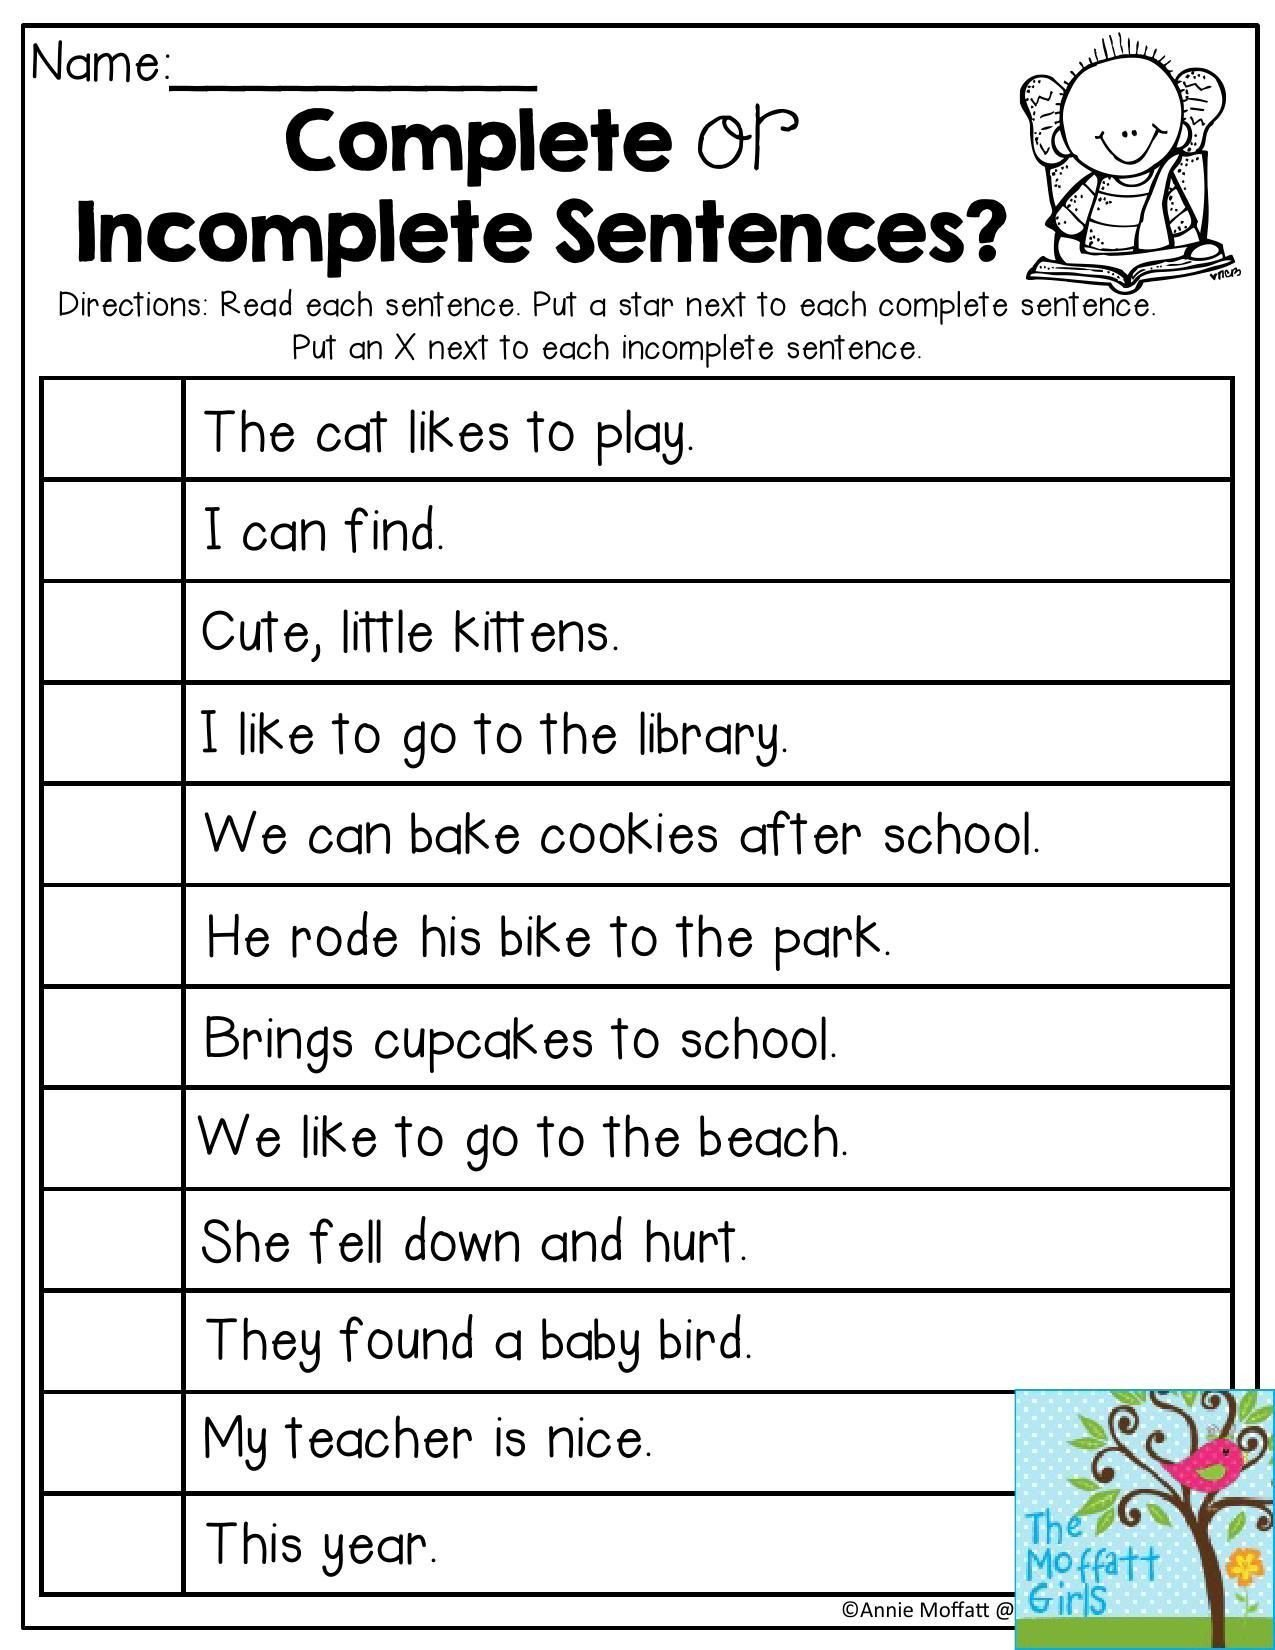 Complete Sentence Worksheet 3rd Grade Plete or In Plete Sentences Read Each Sentence and